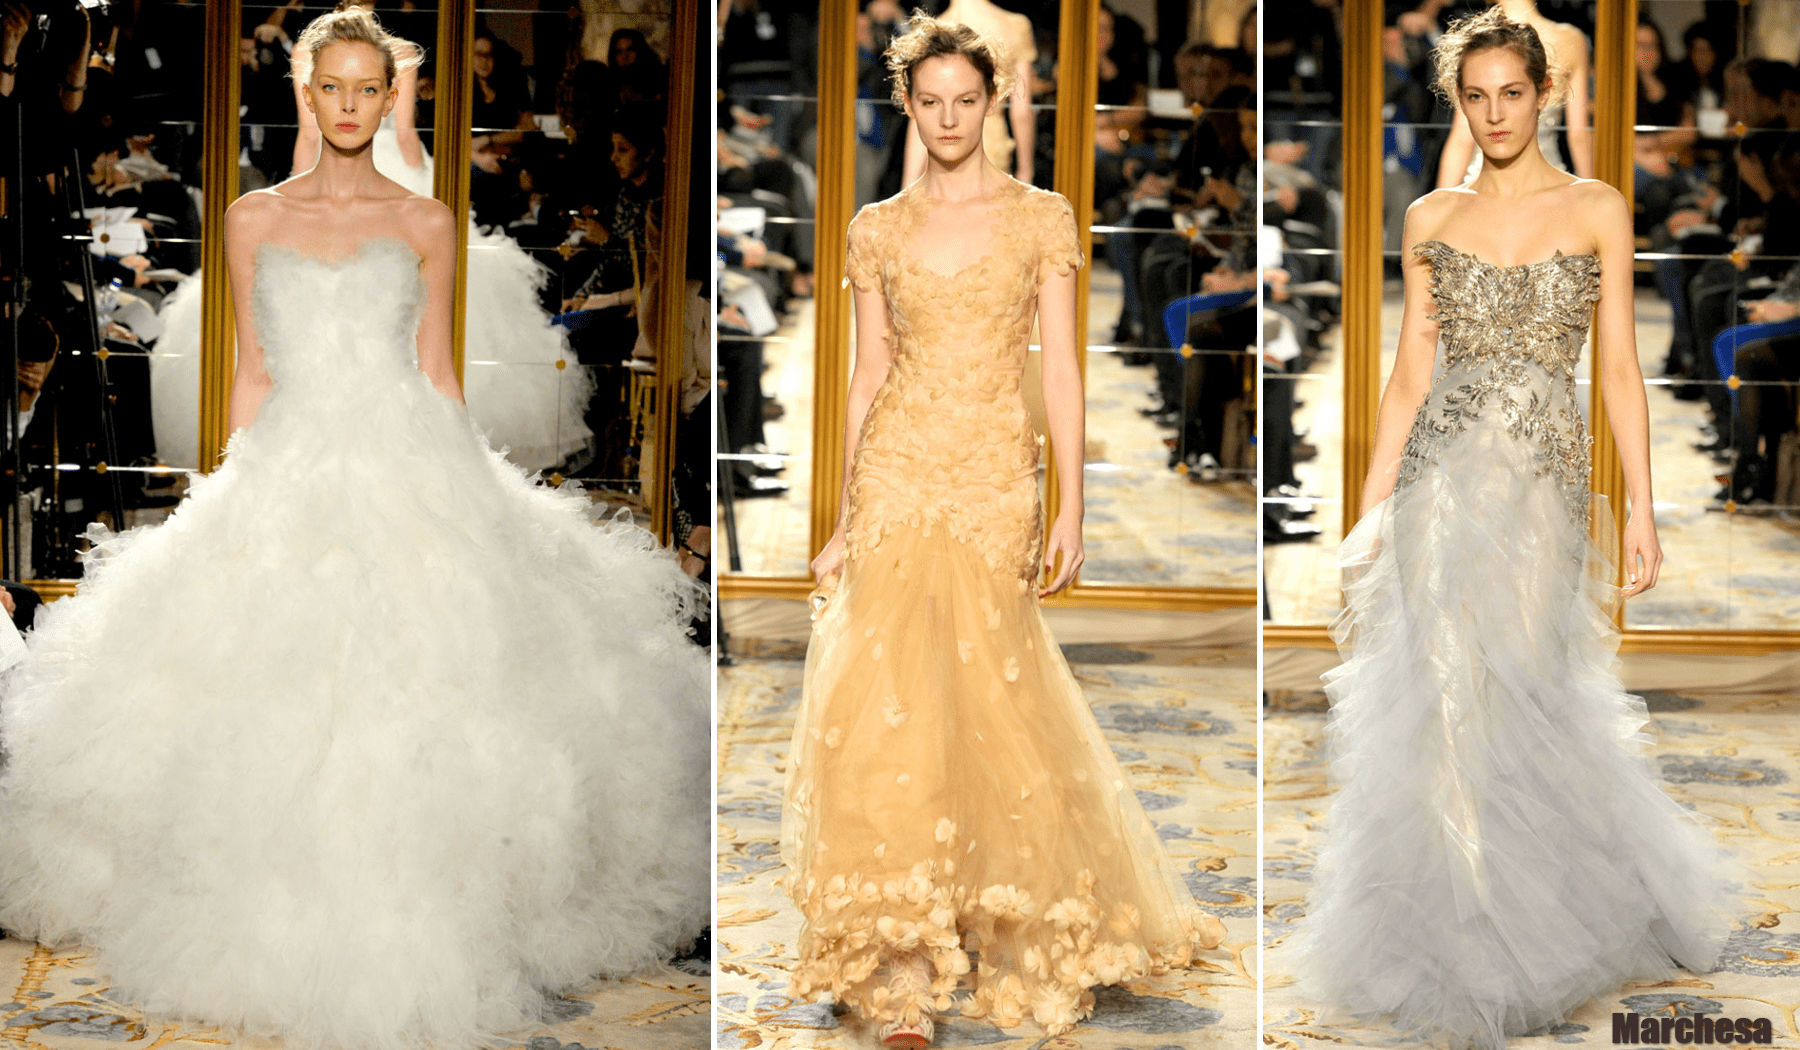 marchesa+wedding+dress+mermaid marchesa wedding dresses Wedding Dress Inspiration Marchesa